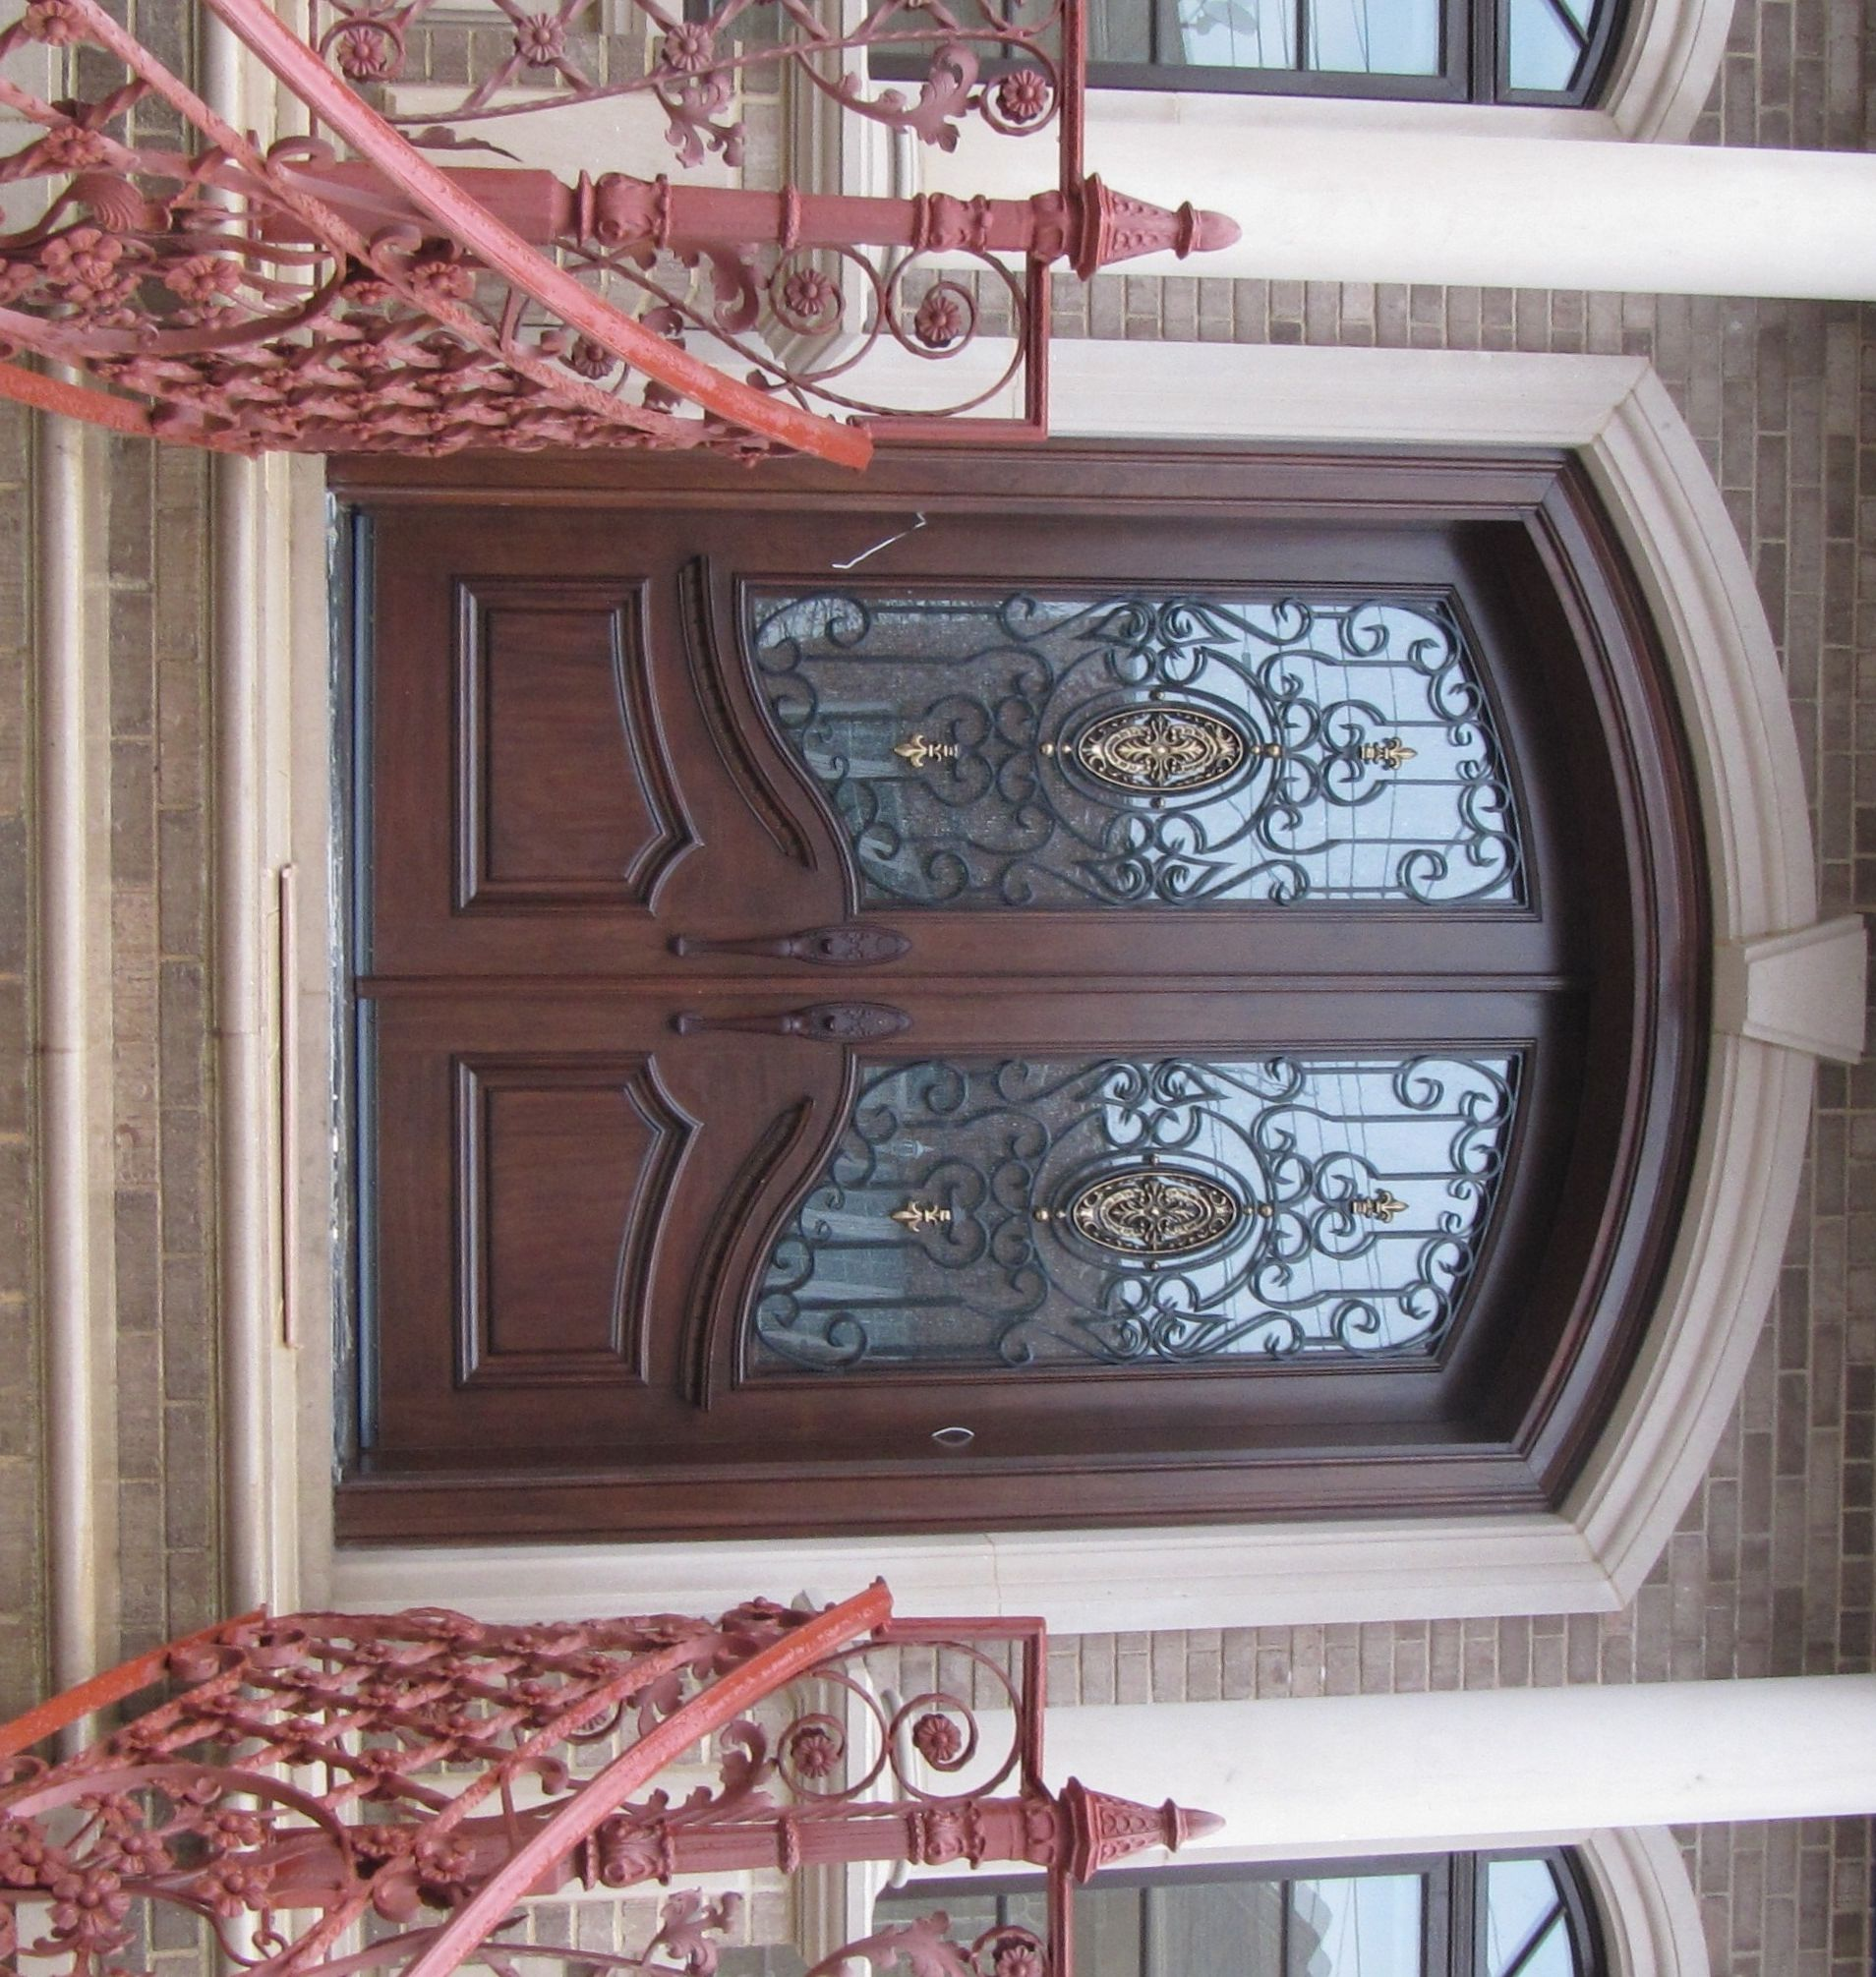 Grand front doors for homes grand doors makes grand entrance in grand front doors for homes grand doors makes grand entrance in new york new rubansaba